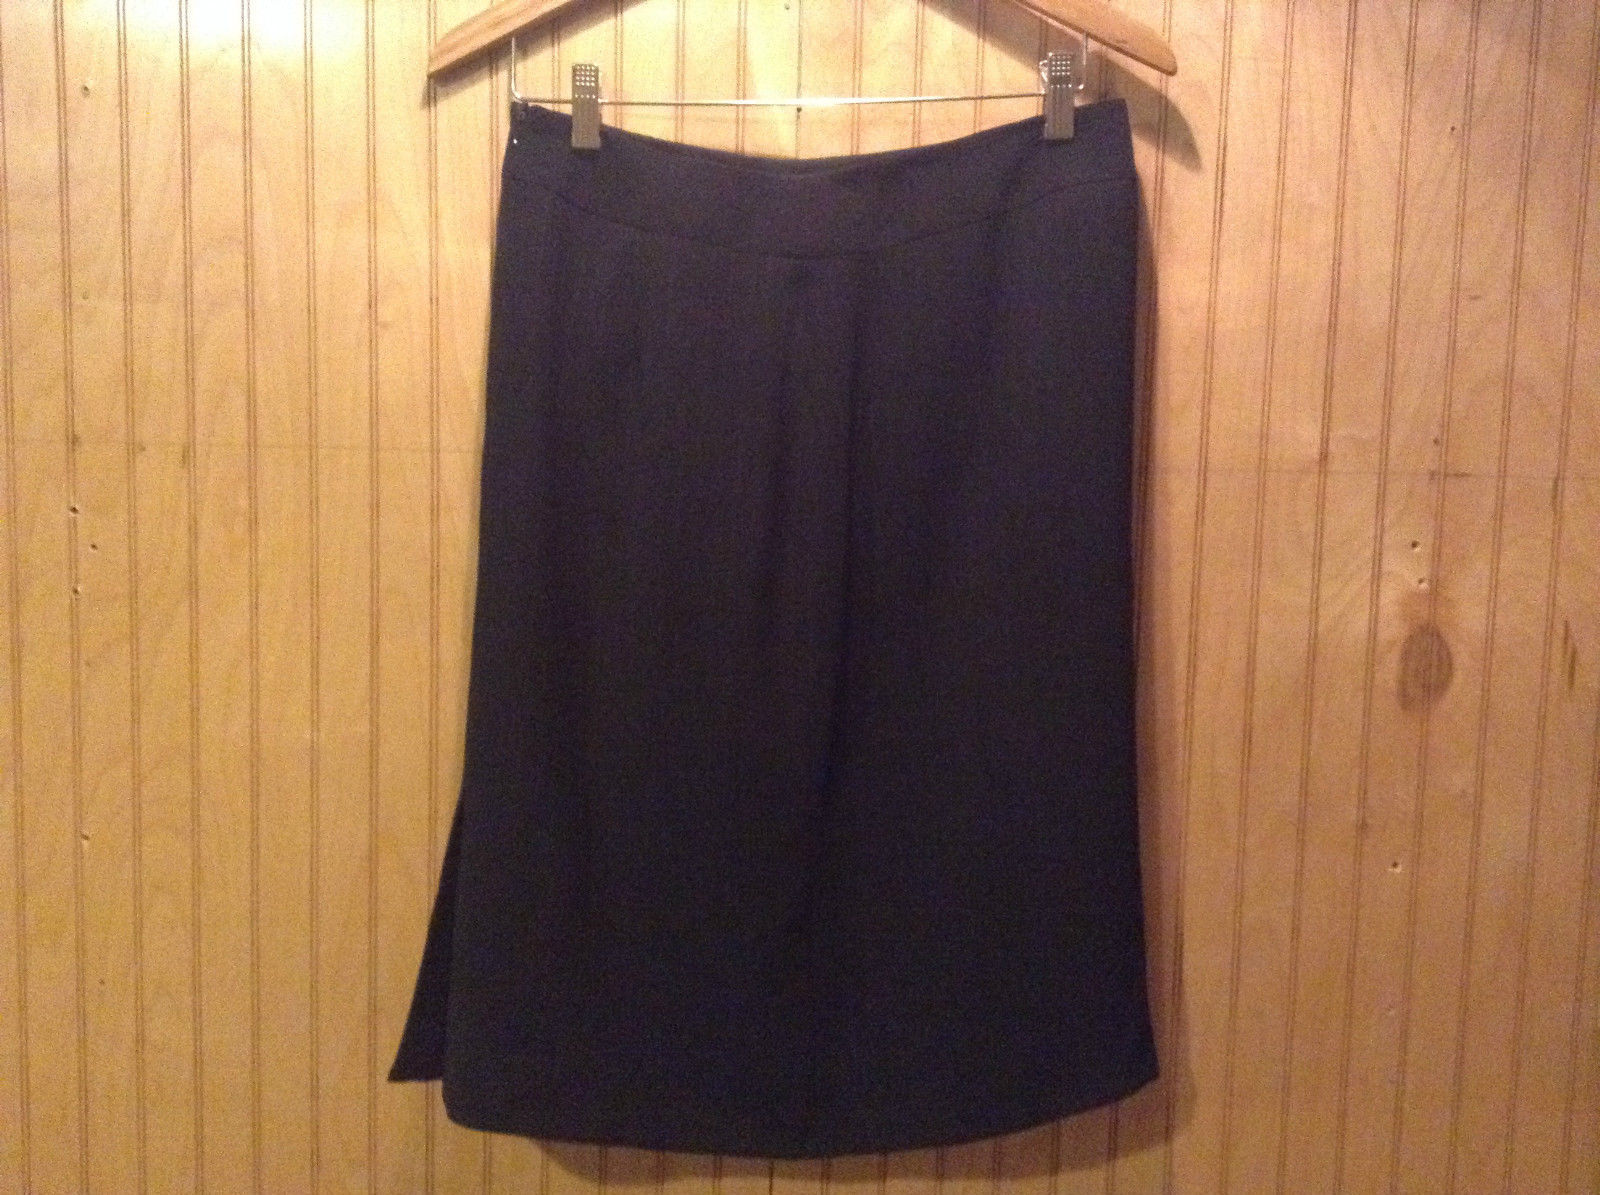 Black Pinstriped Knee Length Skirt Side Slits Zipper Closure Size 8 Unbranded